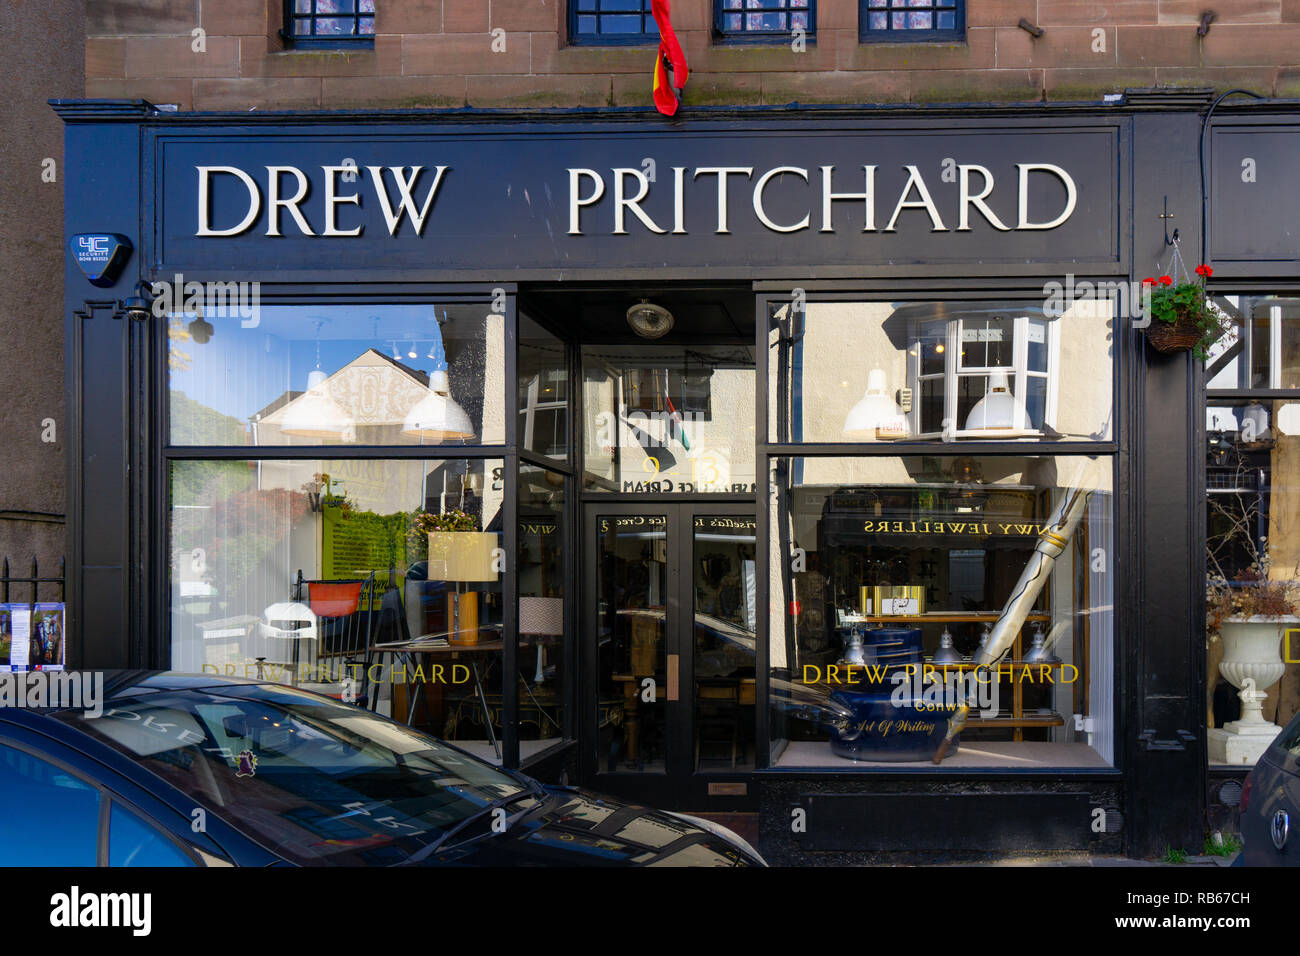 Drew Pritchard Antiques.Drew Pritchard Antiques Shop High Street Conwy North Wales Image